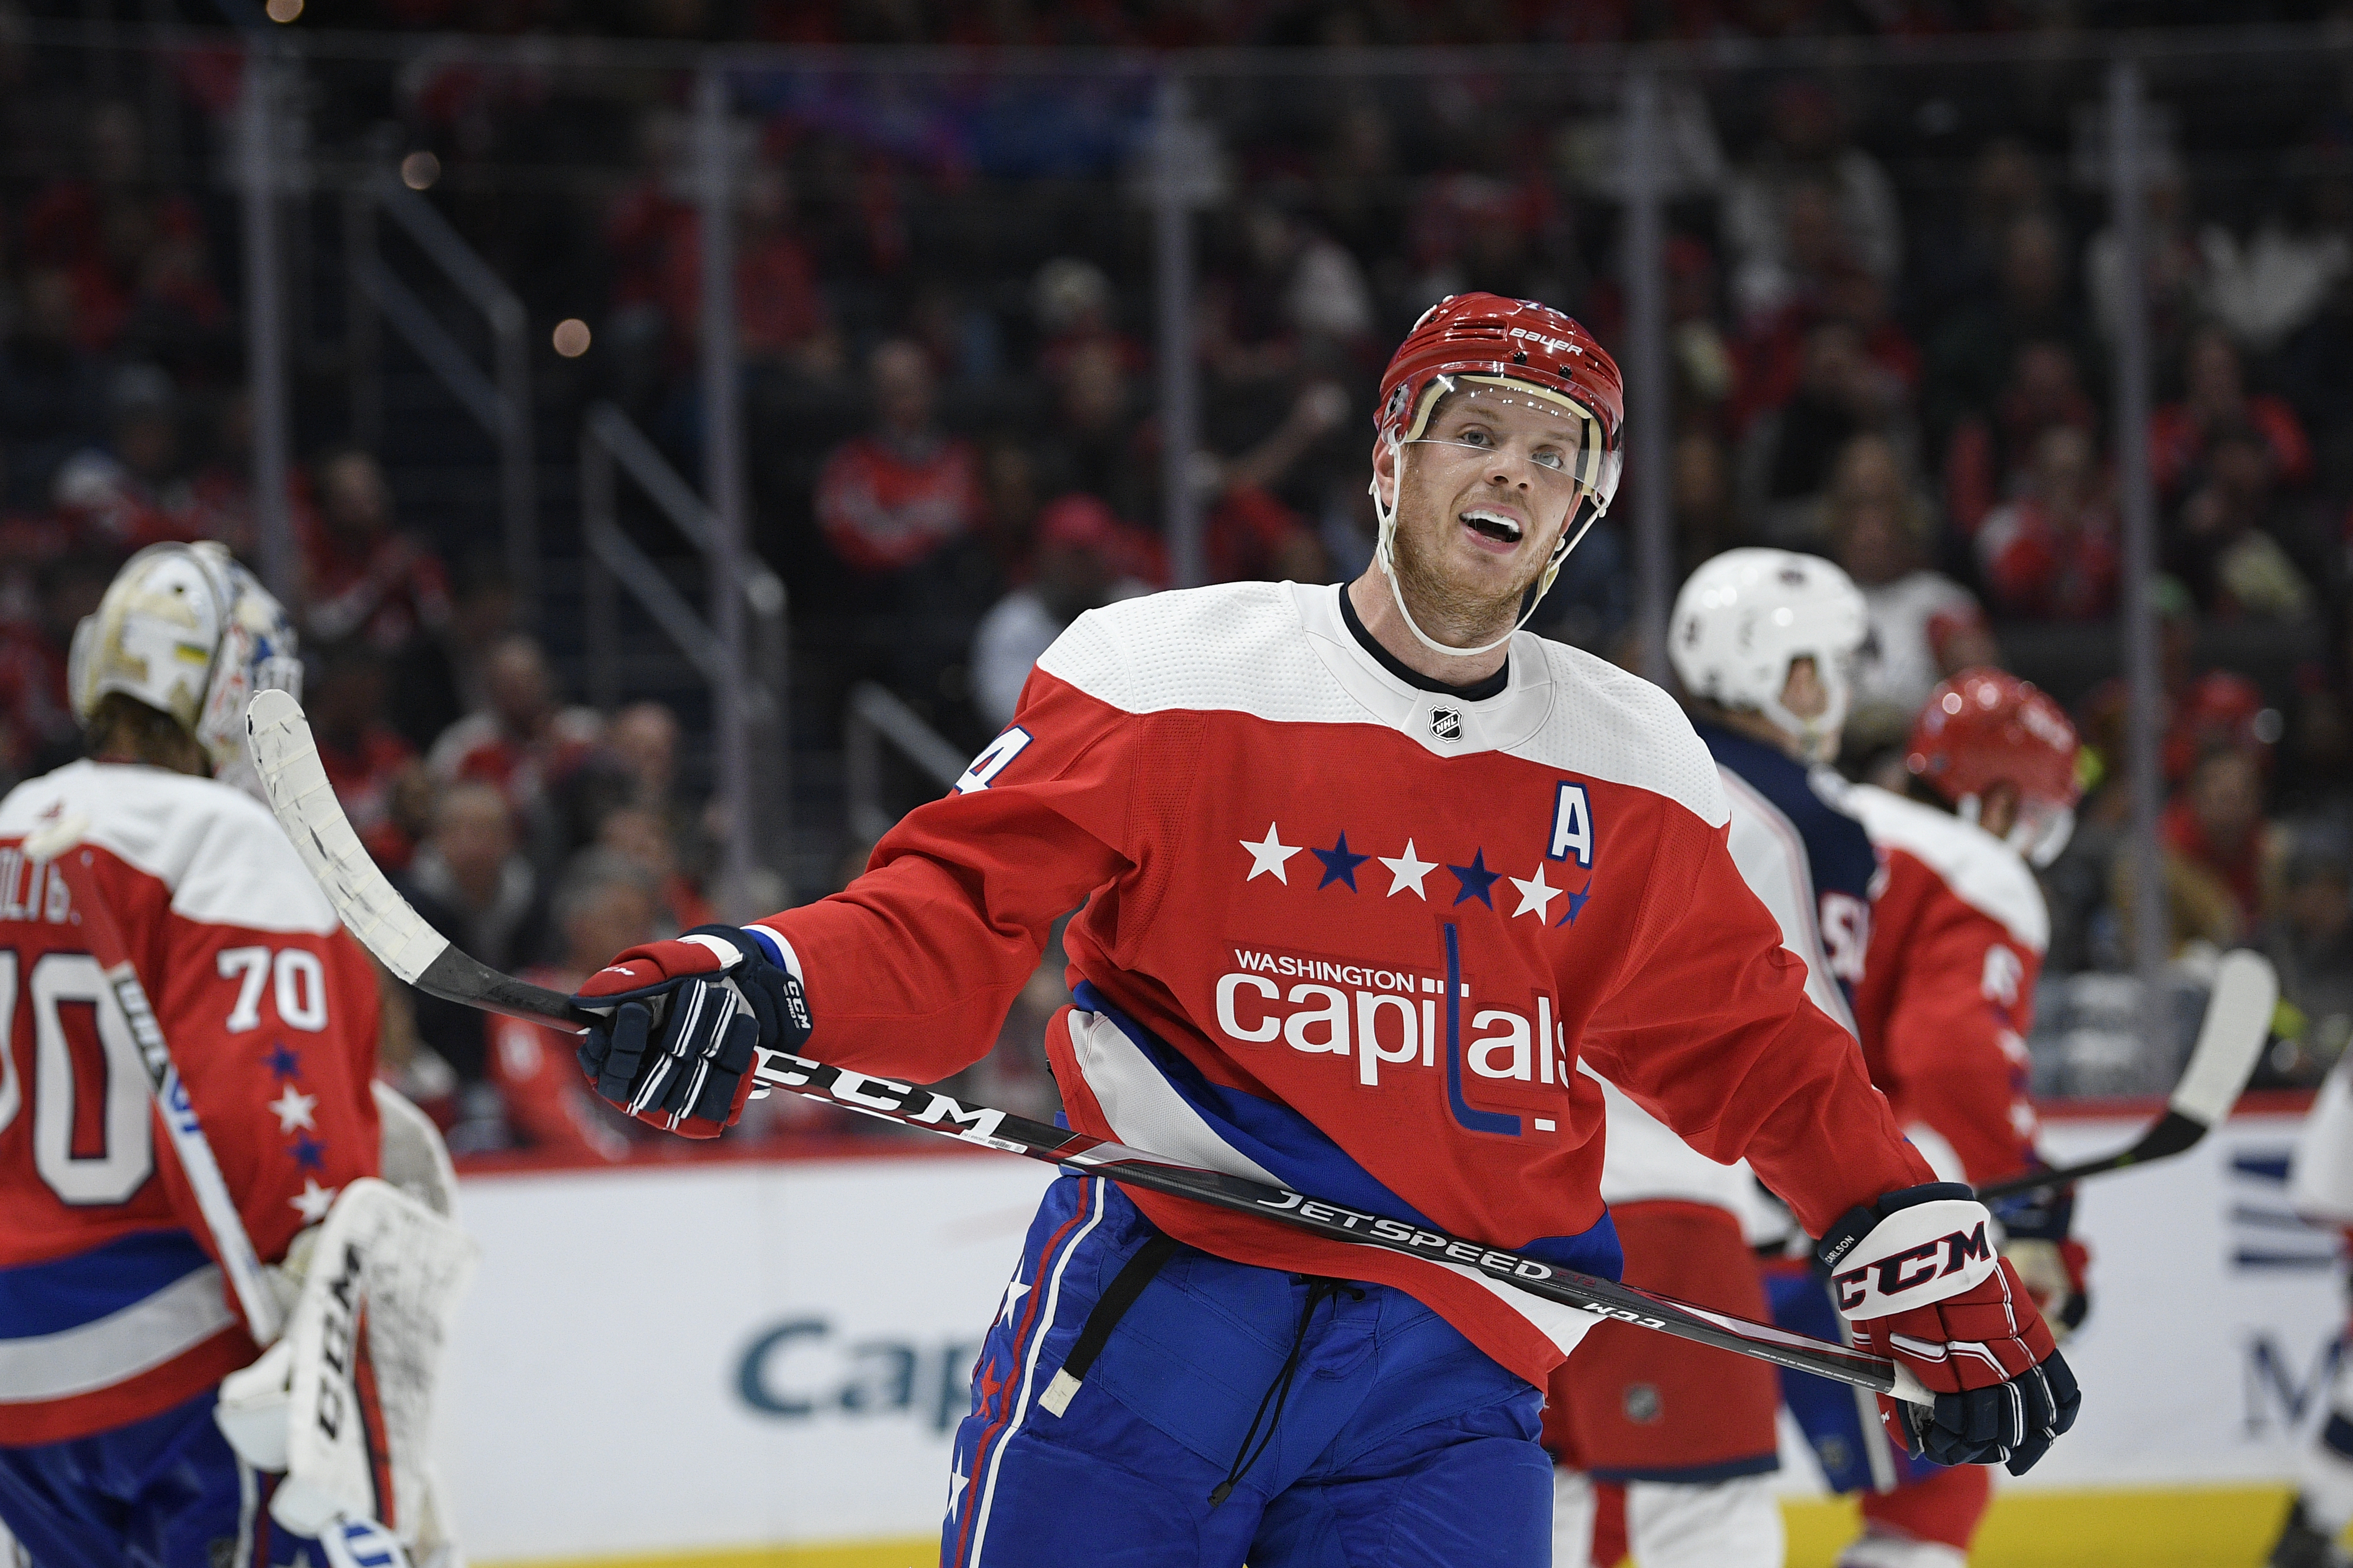 Capitals John Carlson Braden Holtby Named To Nhl All Star Game The Washington Post